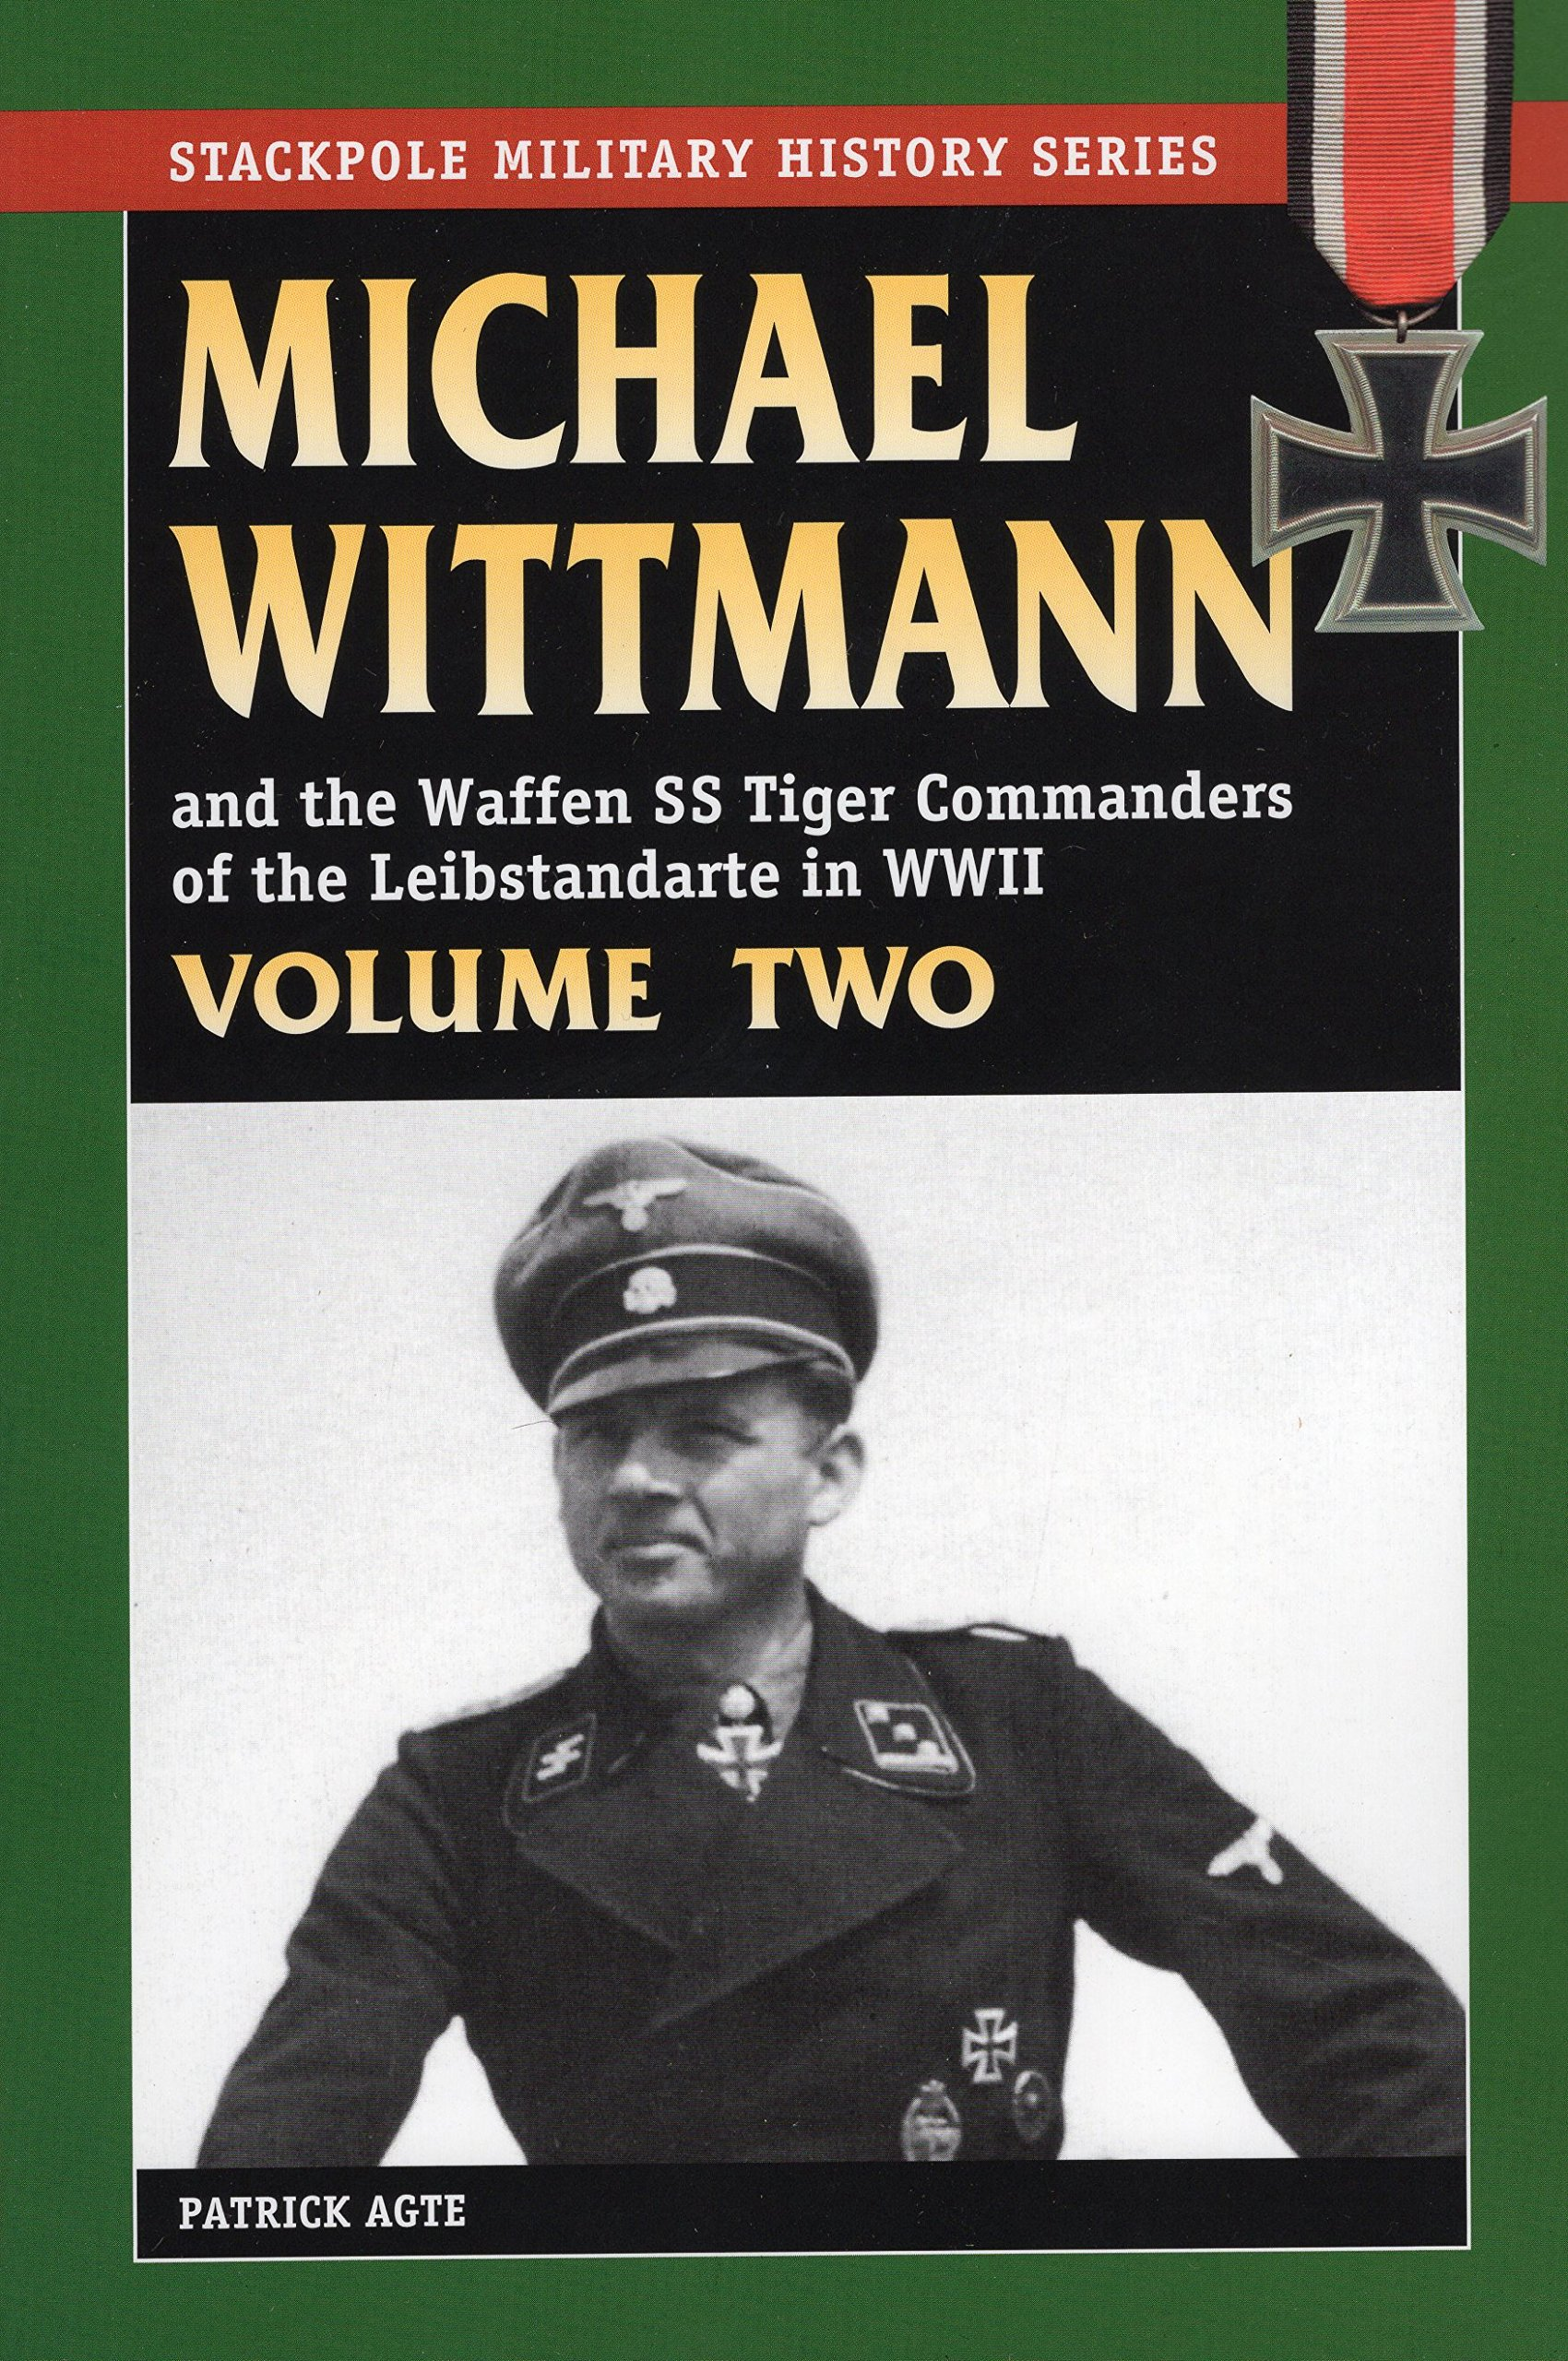 Download MICHAEL WITTMANN AND THE WAFFEN SS TIGER COMMANDERS OF THE LEIBSTANDARTE IN WWII, Vol. 2 (Stackpole Military History) pdf epub